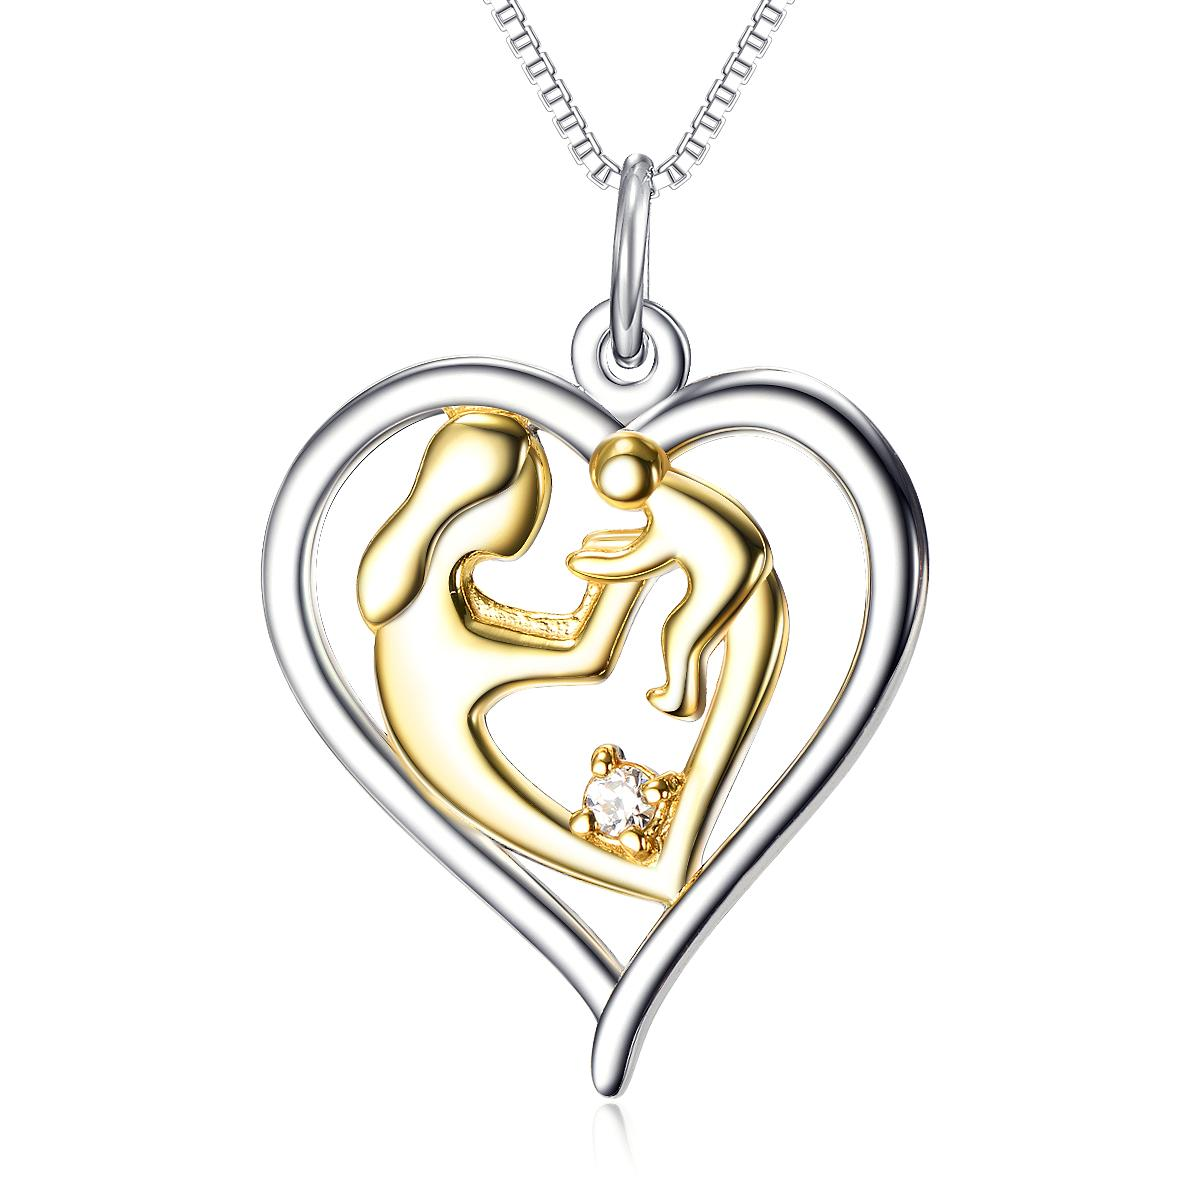 1200x1200 Wholesale 925 Sterling Silver Mother's Love Jewelry 18k Gold